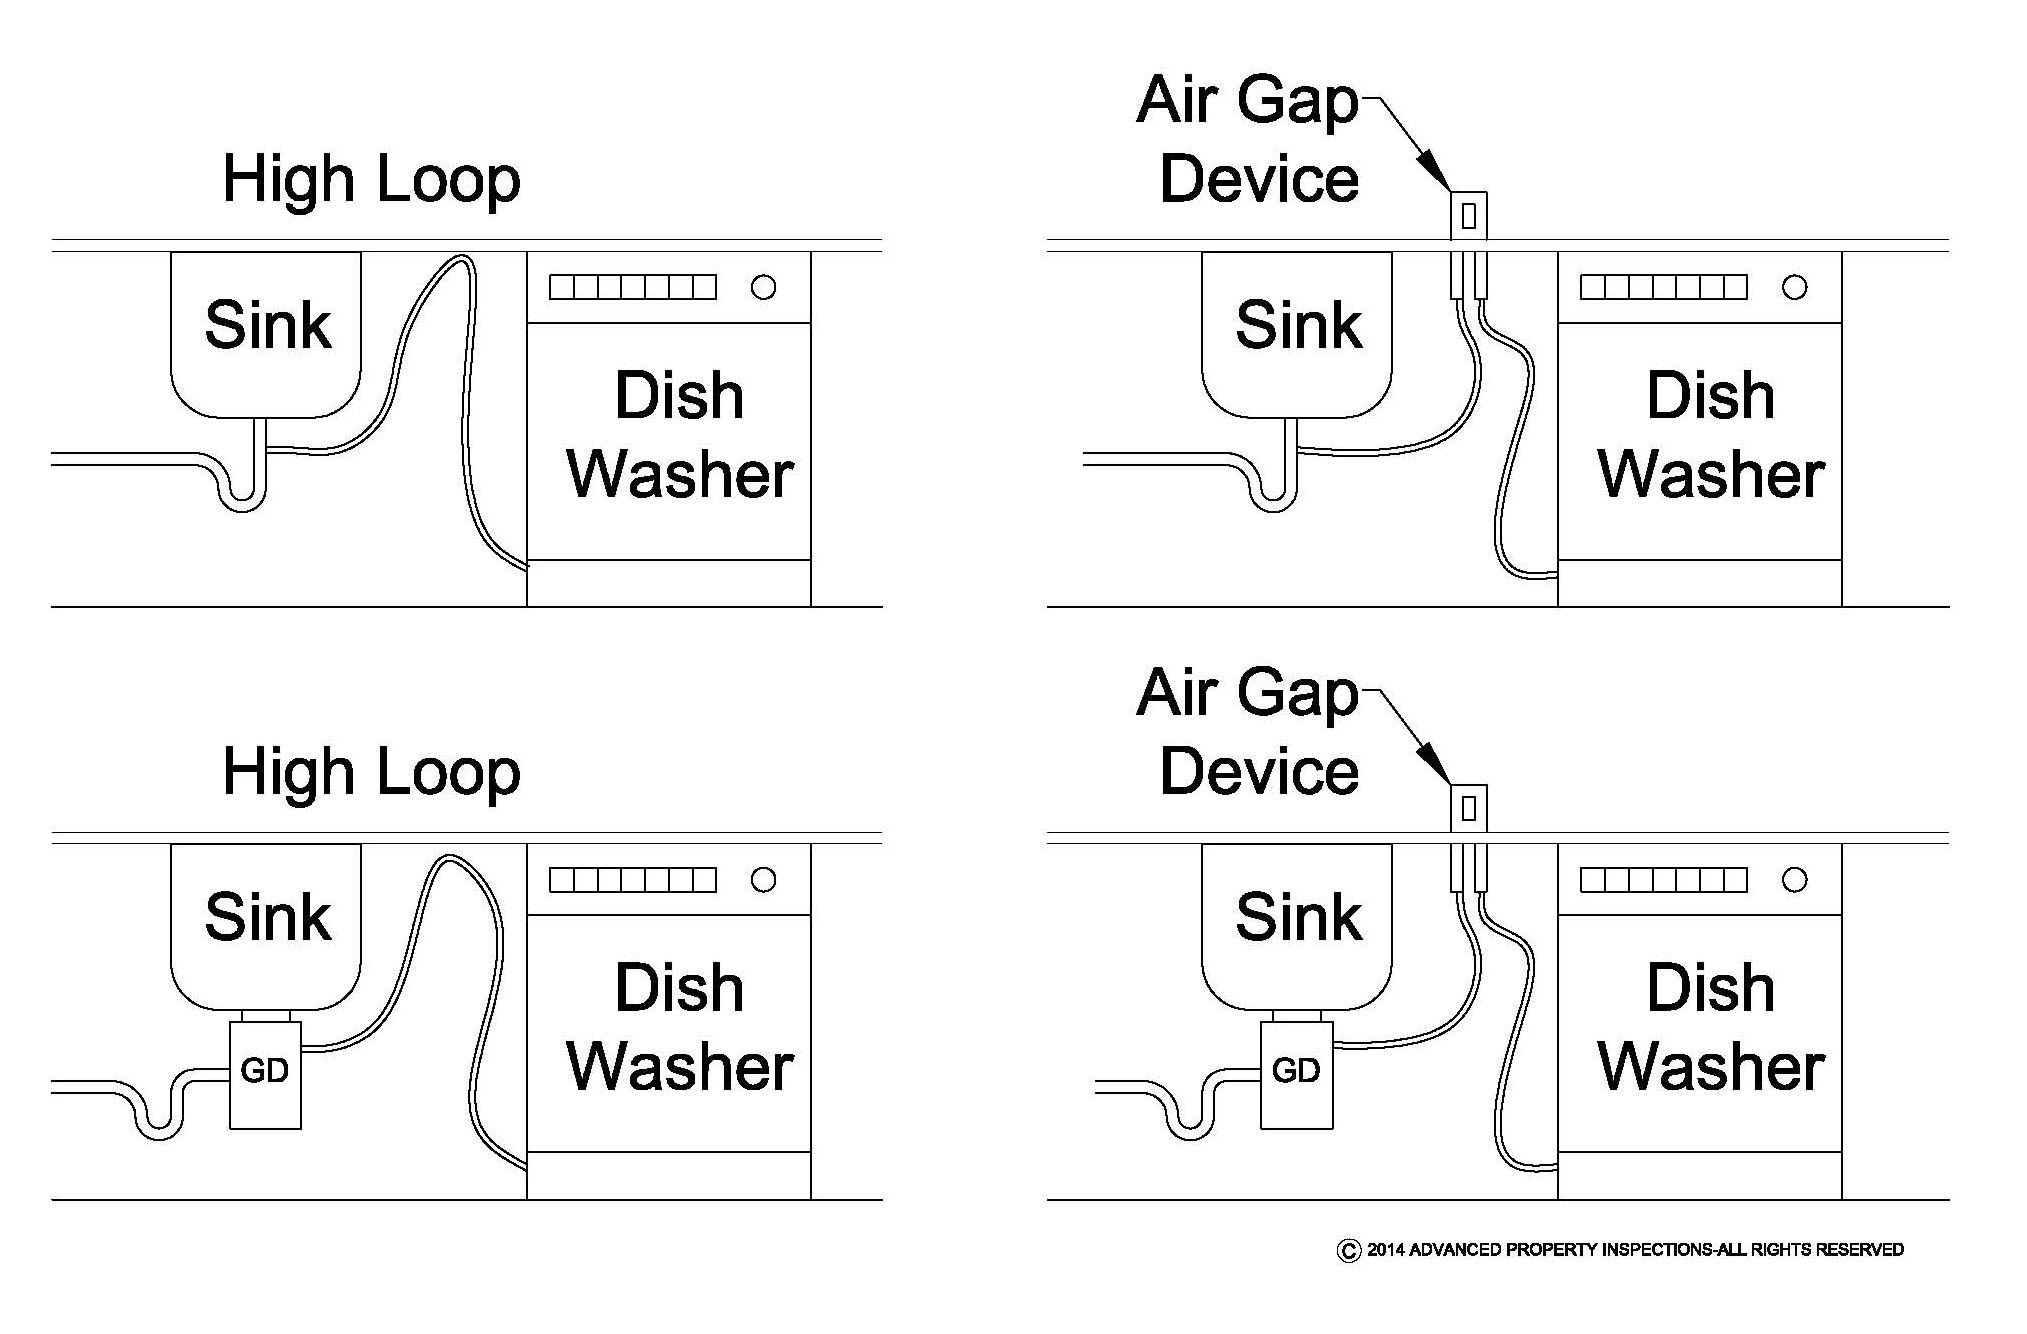 a high loop is simply taking the drain hose from the dishwasher and mounting it as high as possible under the counter top before it loops down and connects